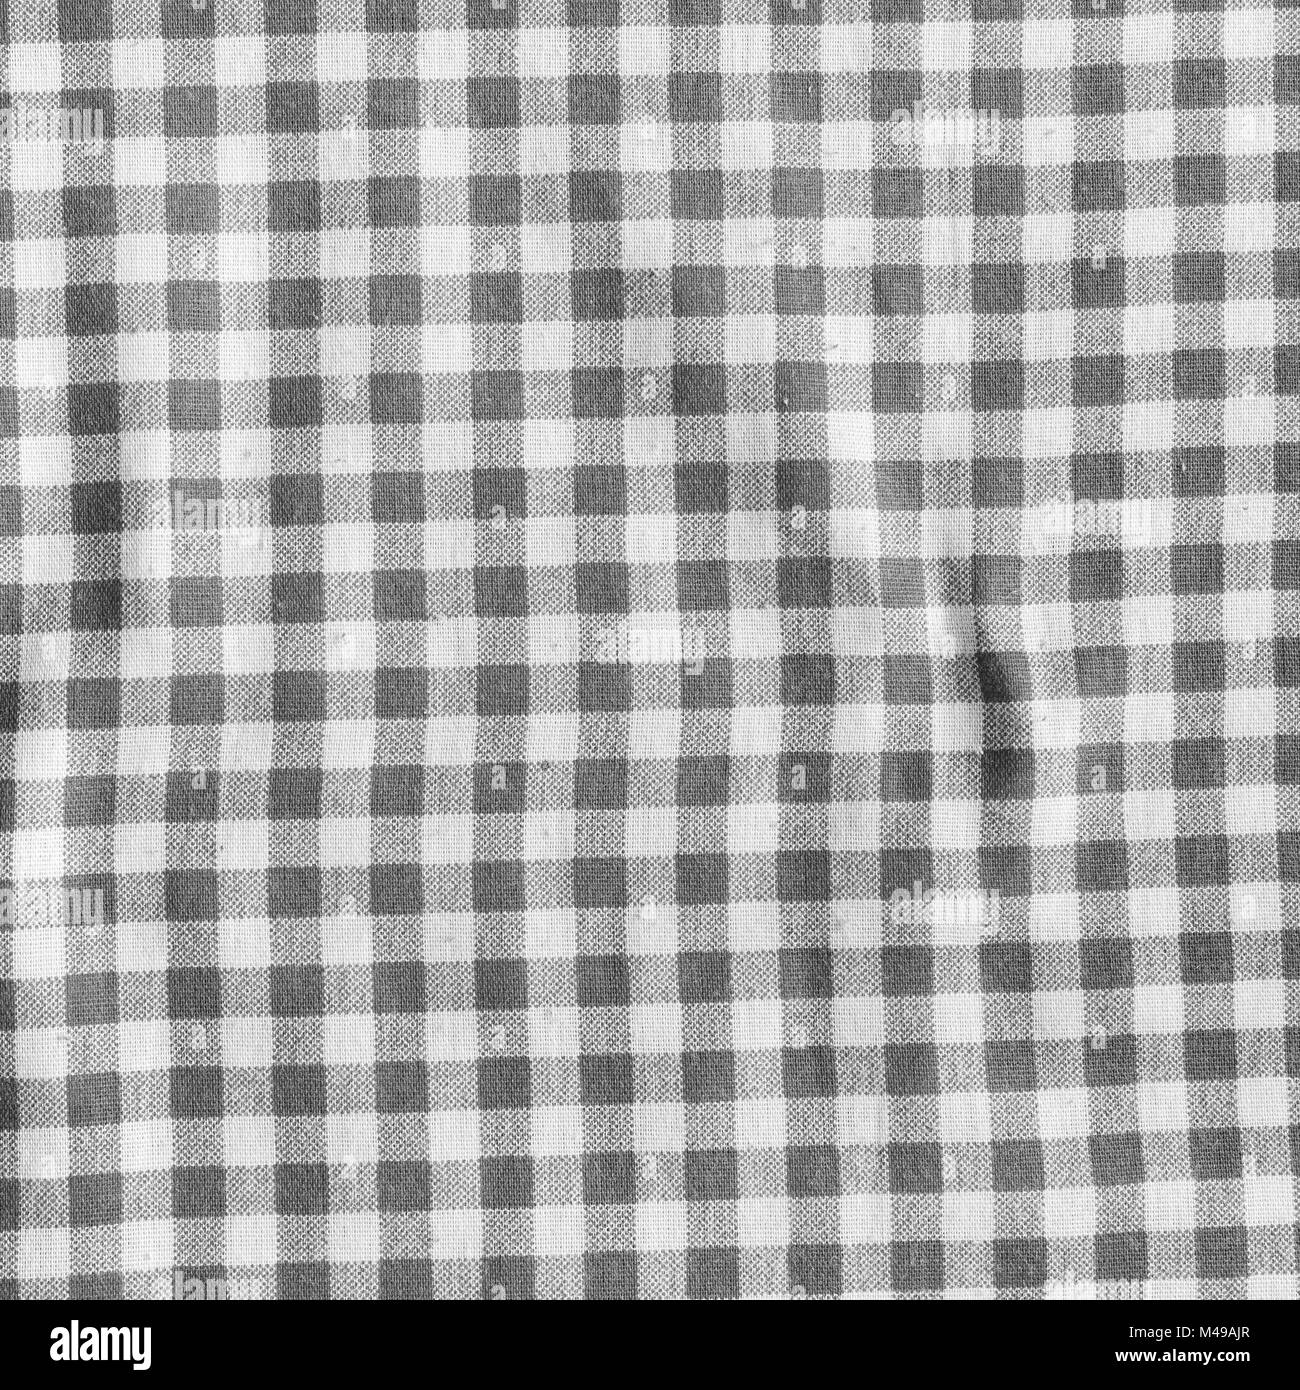 Black And White Picnic Tablecloth Background. Checkered Fabric Texture.